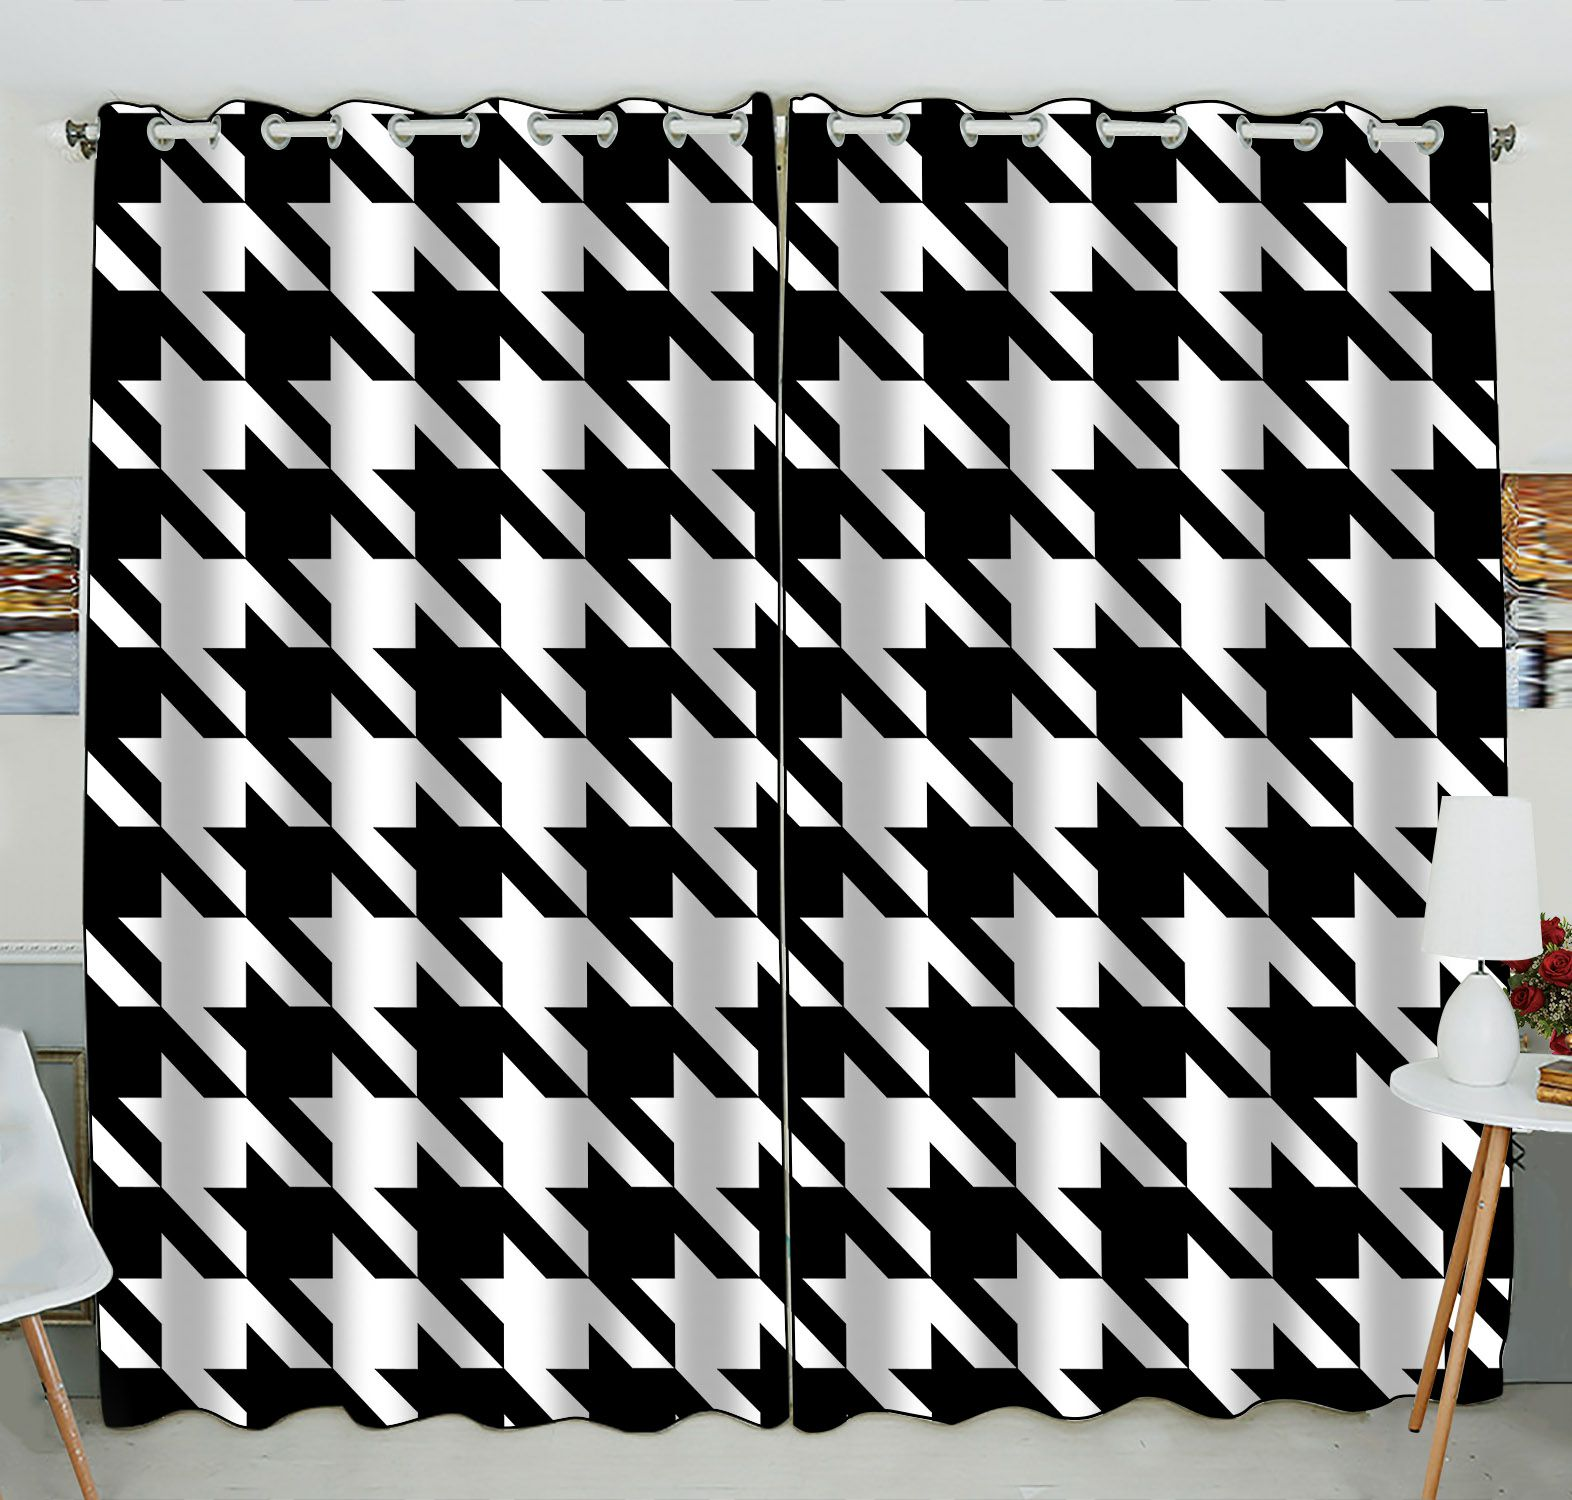 ZKGK Houndstooth Pattern Window Curtain Drapery/Panels/Treatment For Living Room Bedroom Kids Rooms 52x84 inches Two Panel